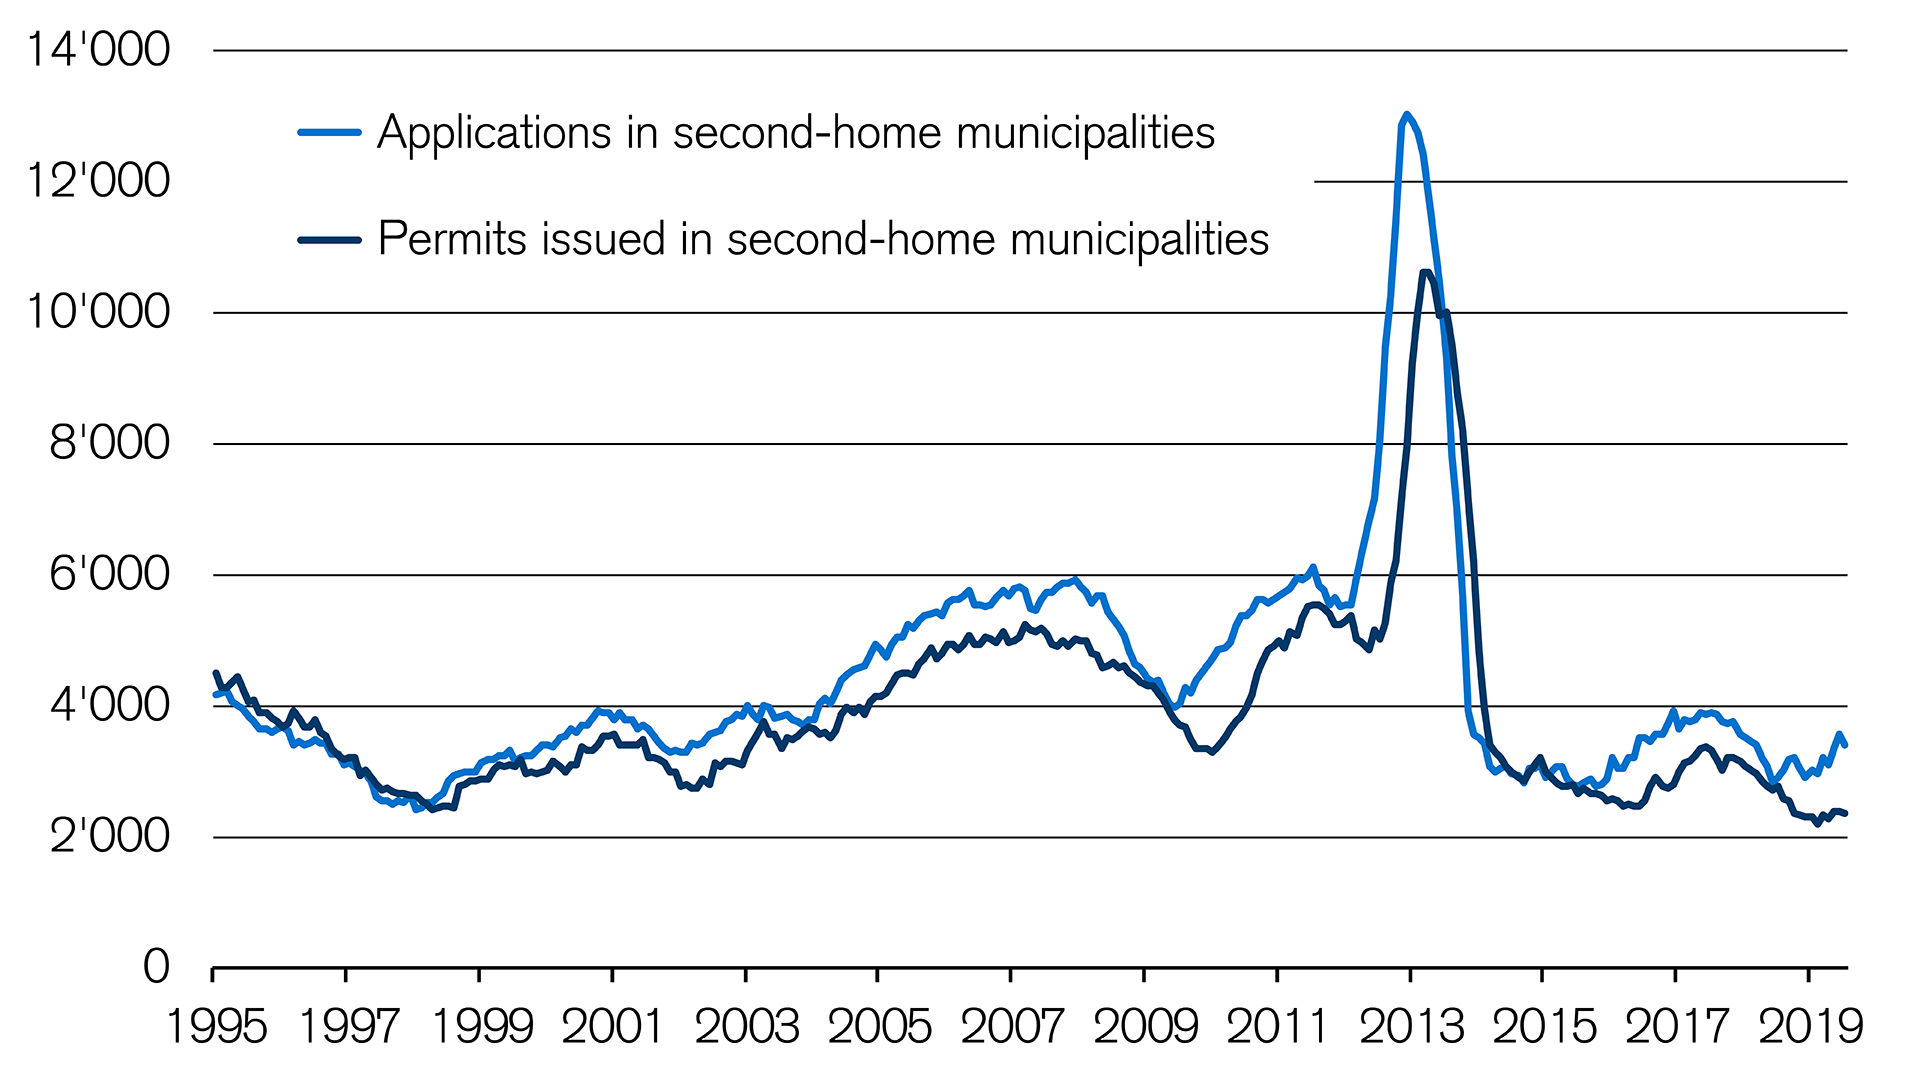 building permits in municipalities affected by the second homes act